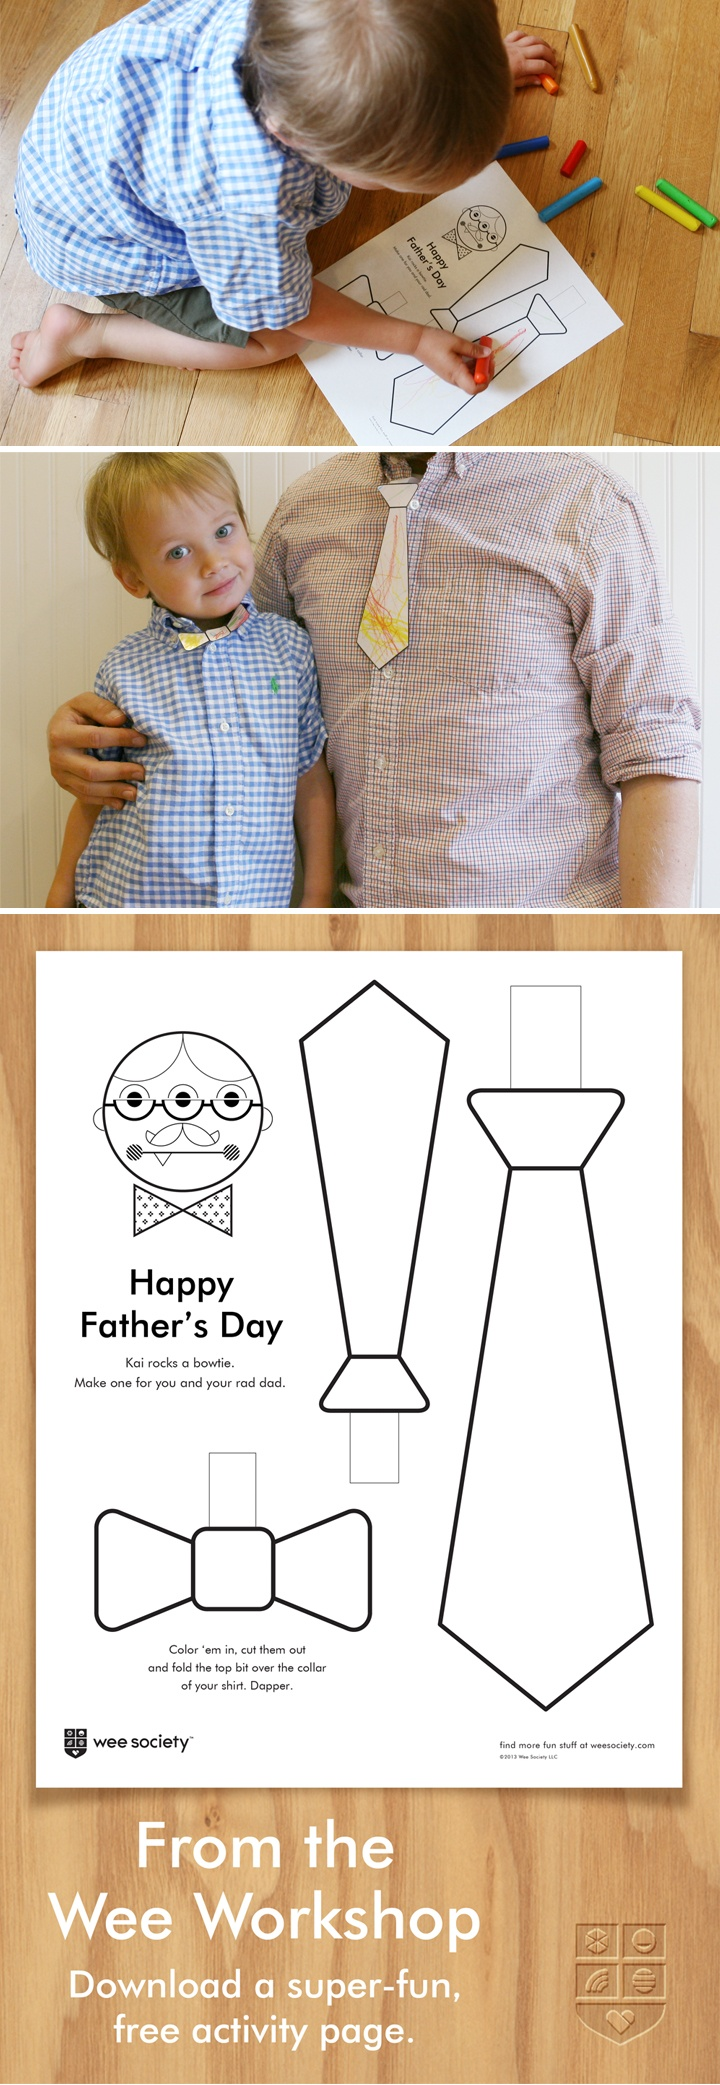 Don't forget dad this weekend. Download our free Father's Day printable and get crafting together.